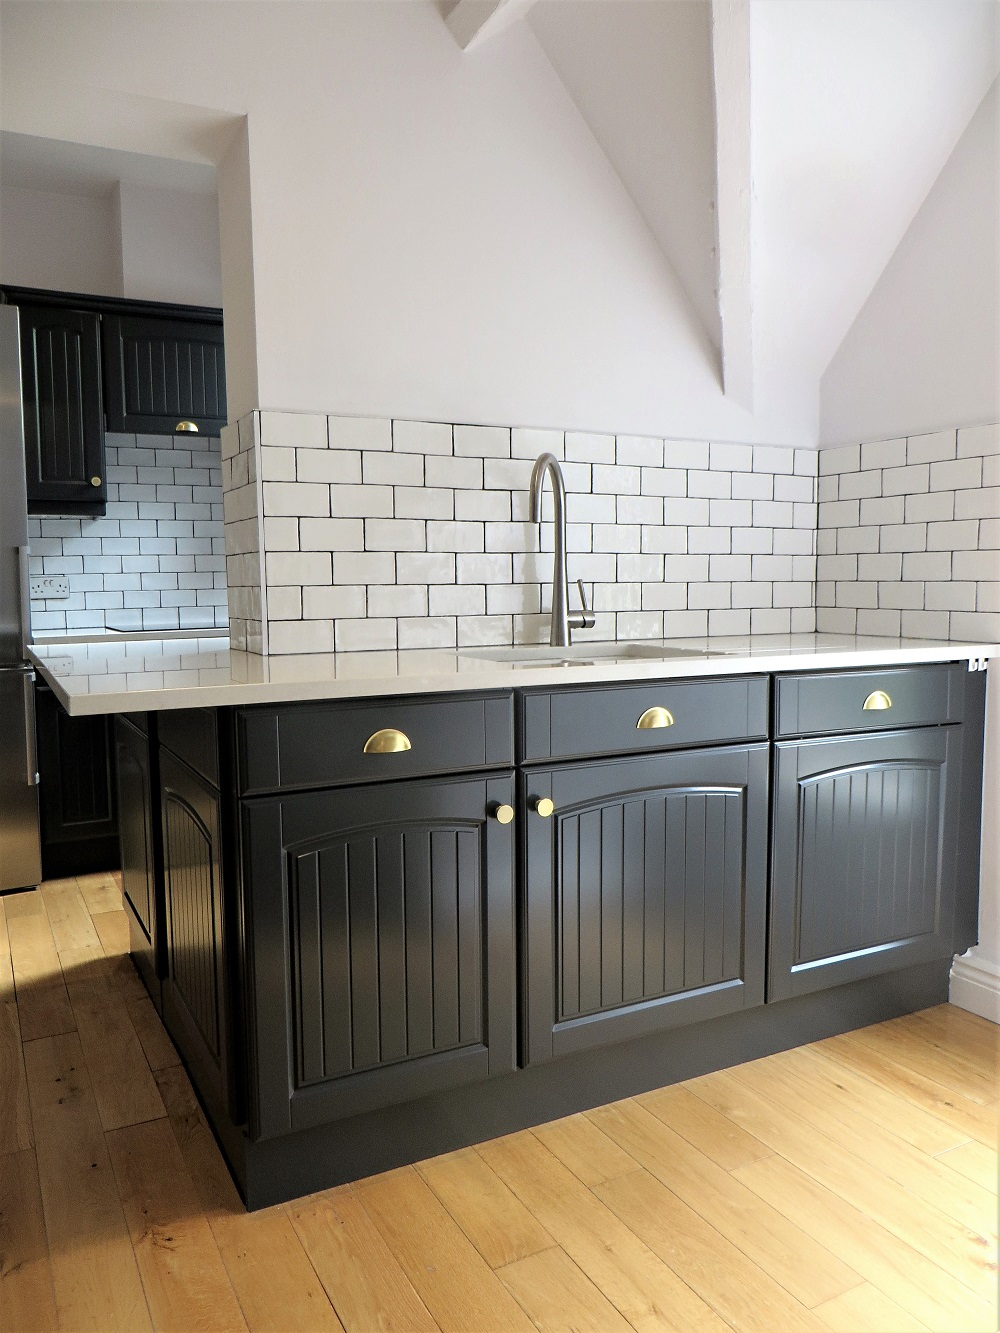 The finished kitchen painted in a deep charcoal colour